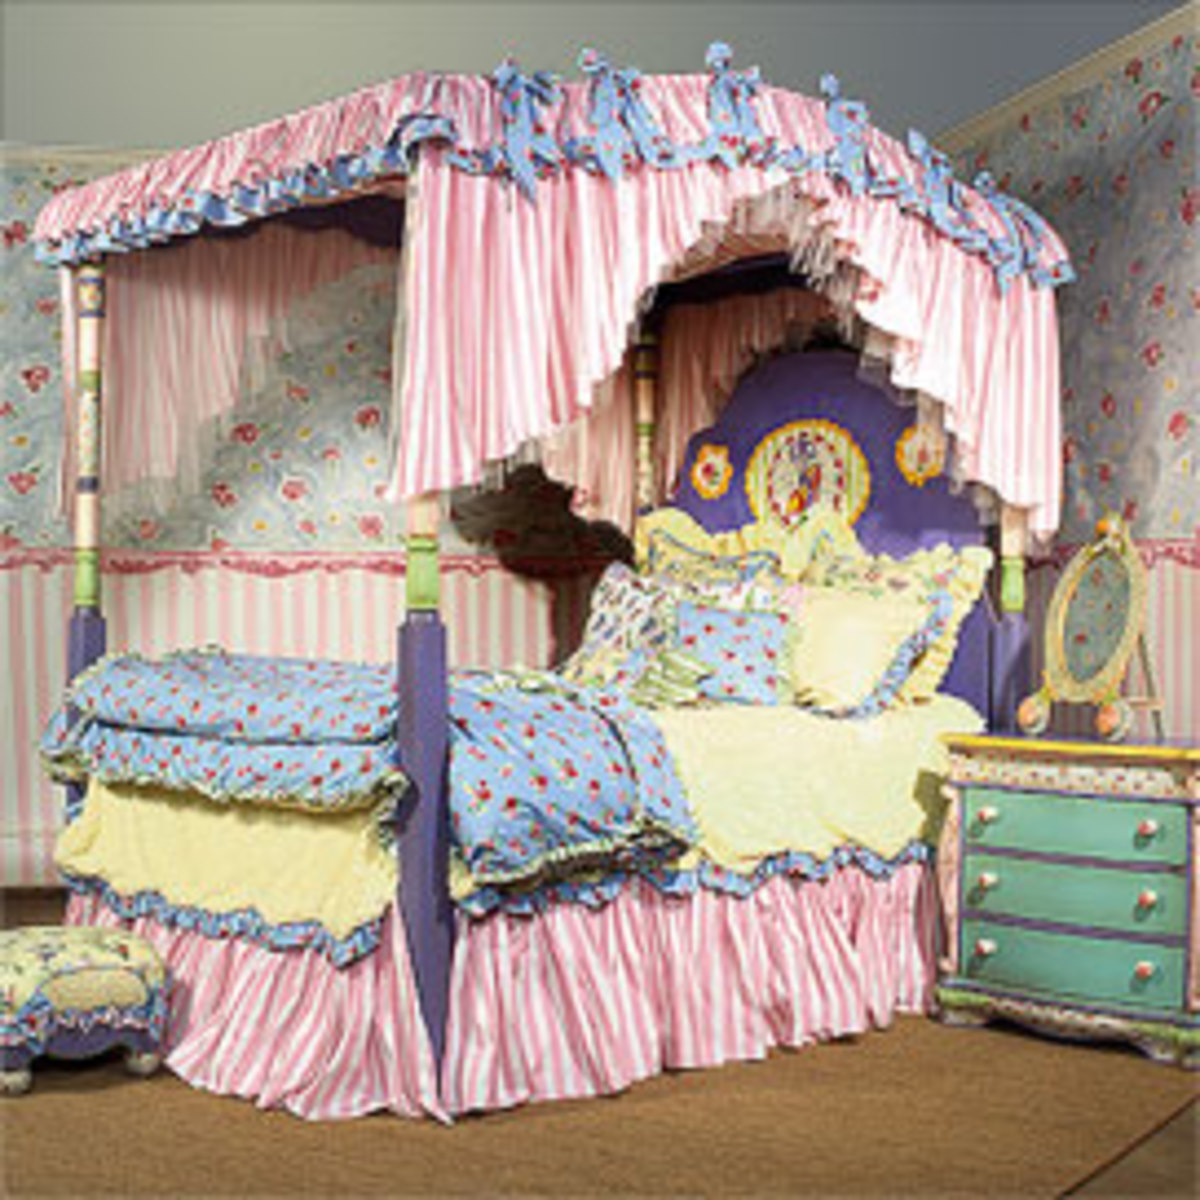 Divine Dress Up fantasy-themed bed